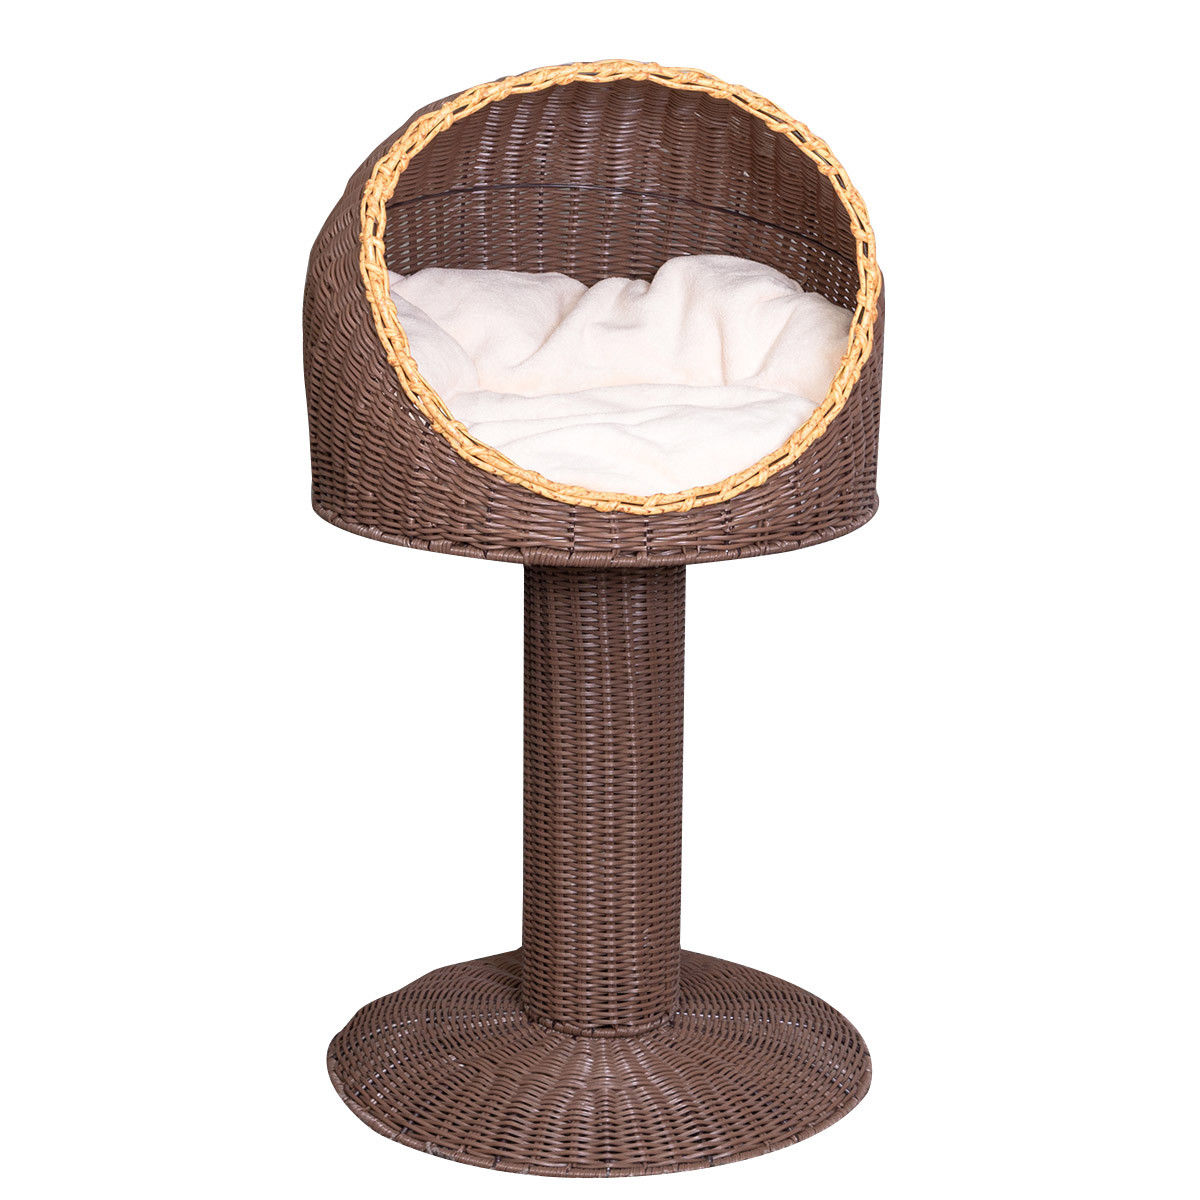 Gymax 17'' Cat Bed Home Ball Hooded Rattan Wicker Elevated Cat Kitten with Cushion - image 6 of 9